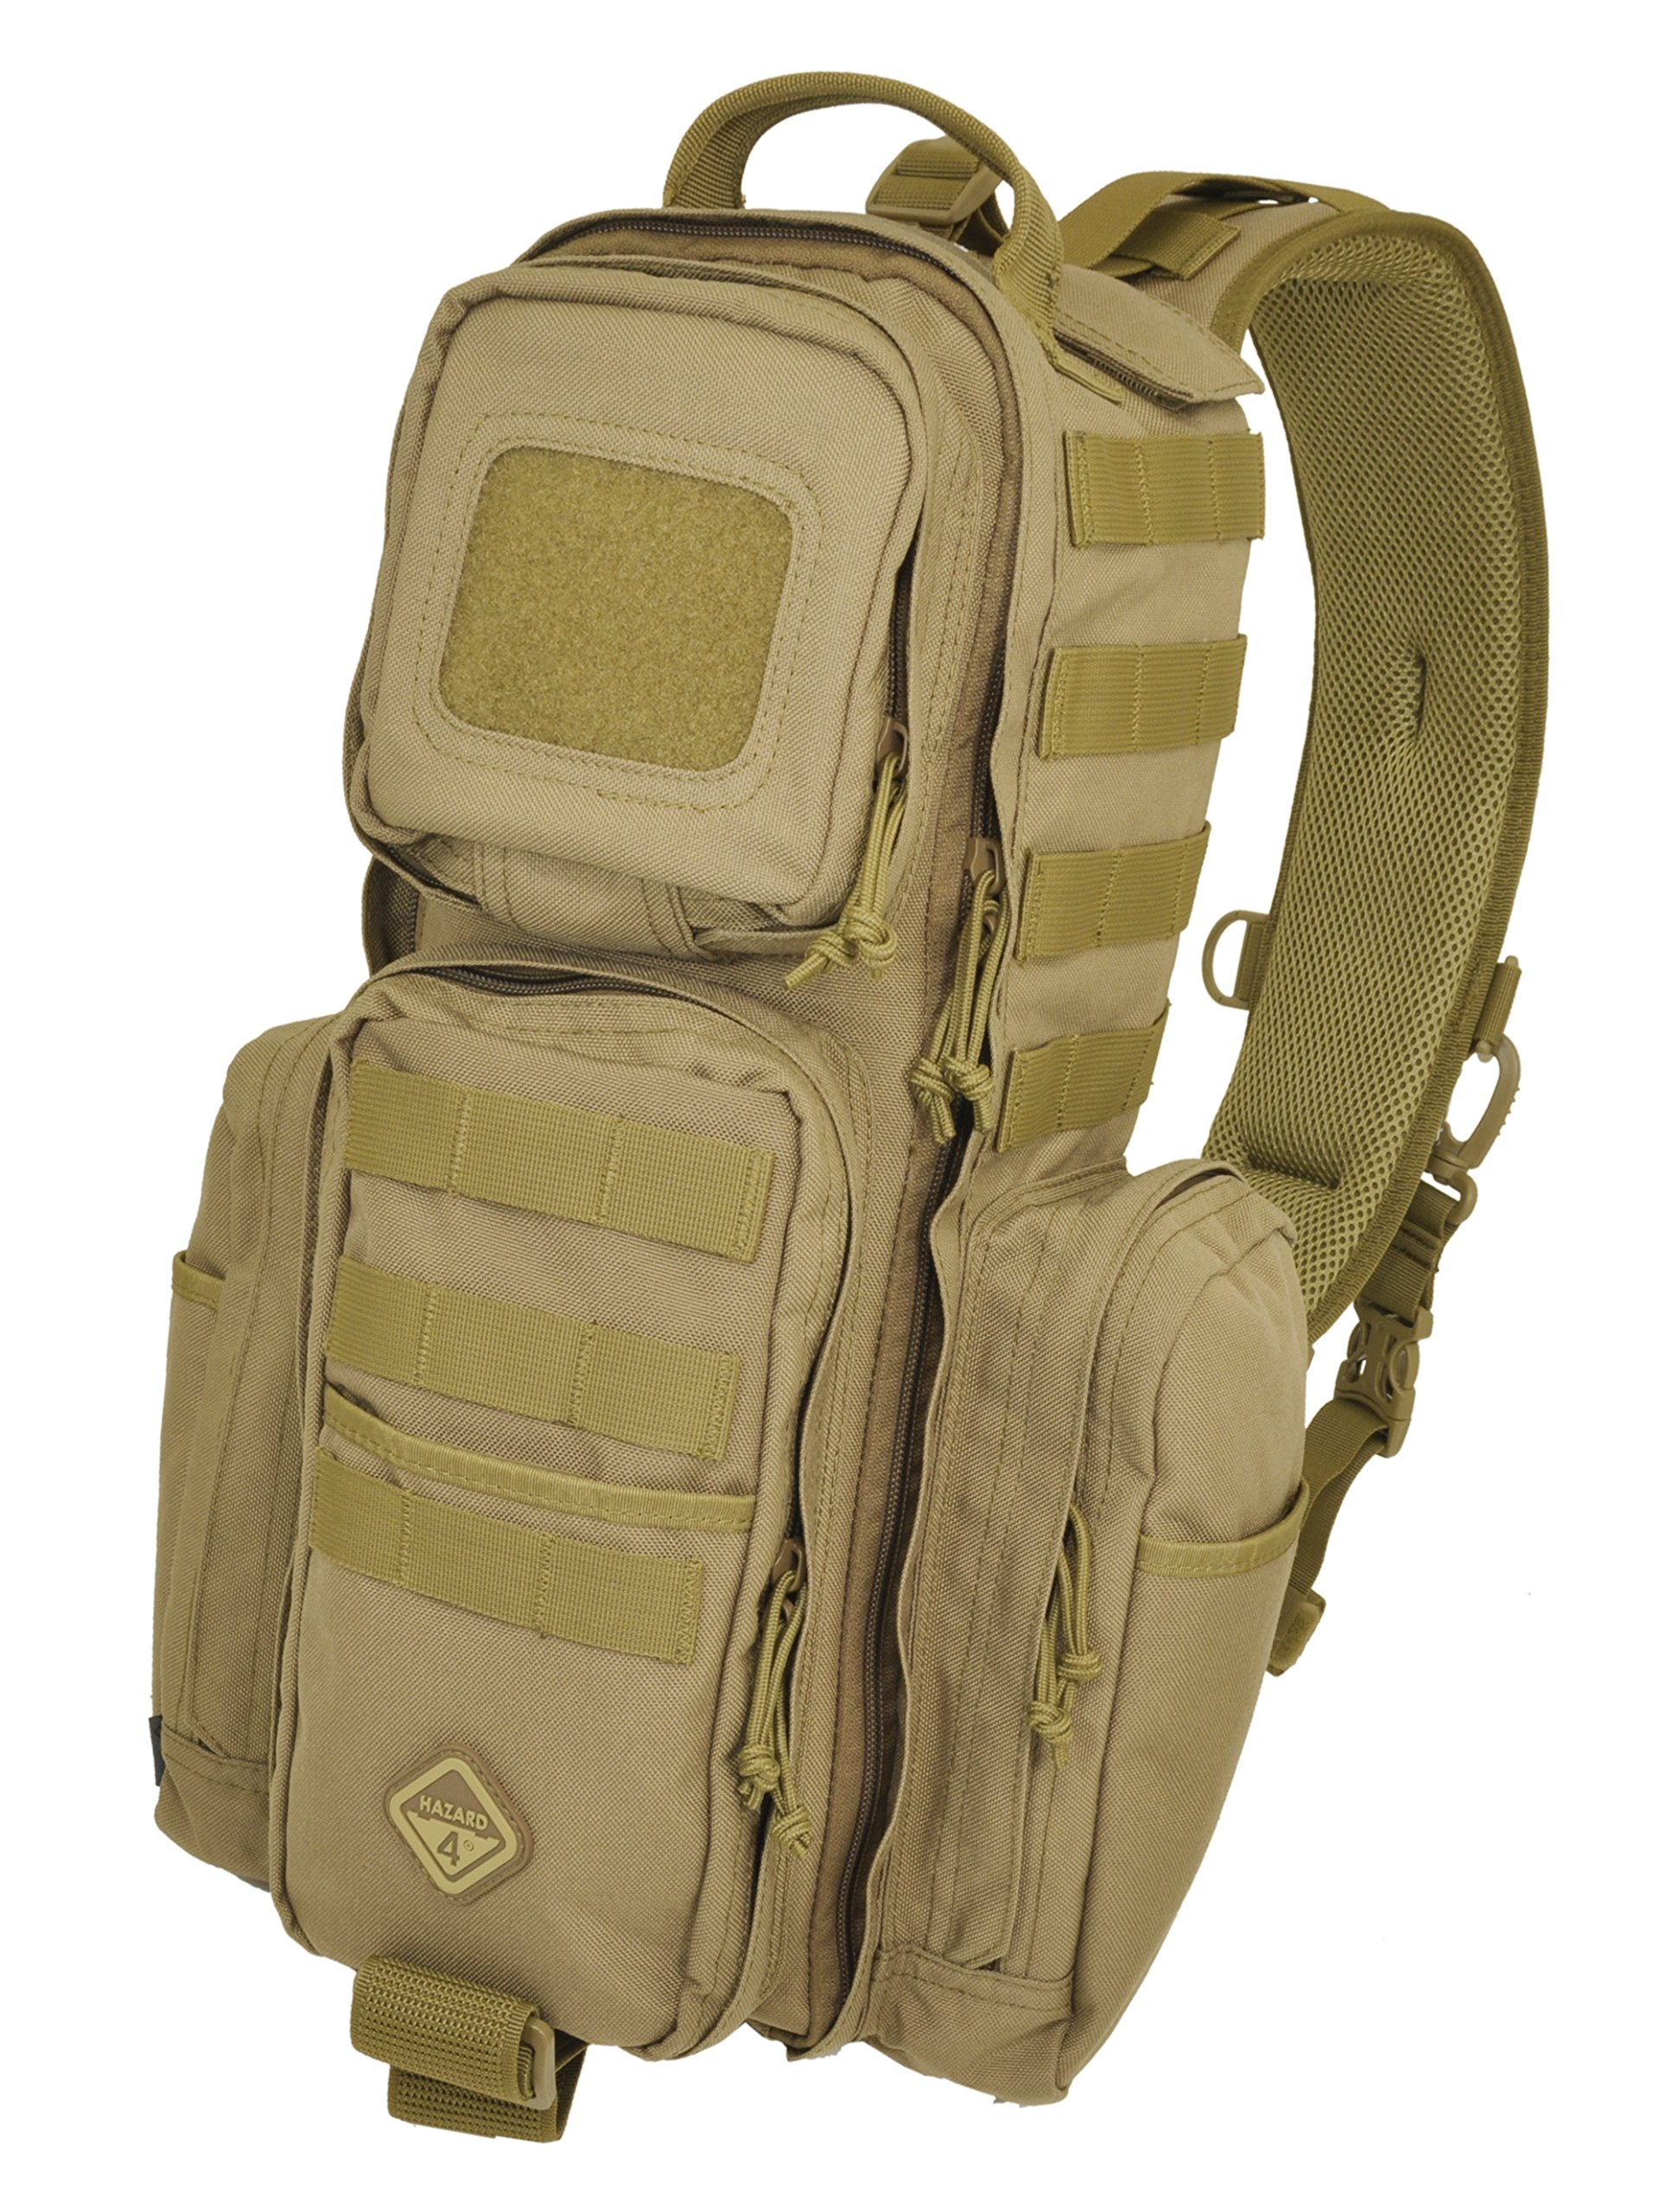 Hazard 4 Evac Rocket Urban Sling Pack with Molle, Coyote